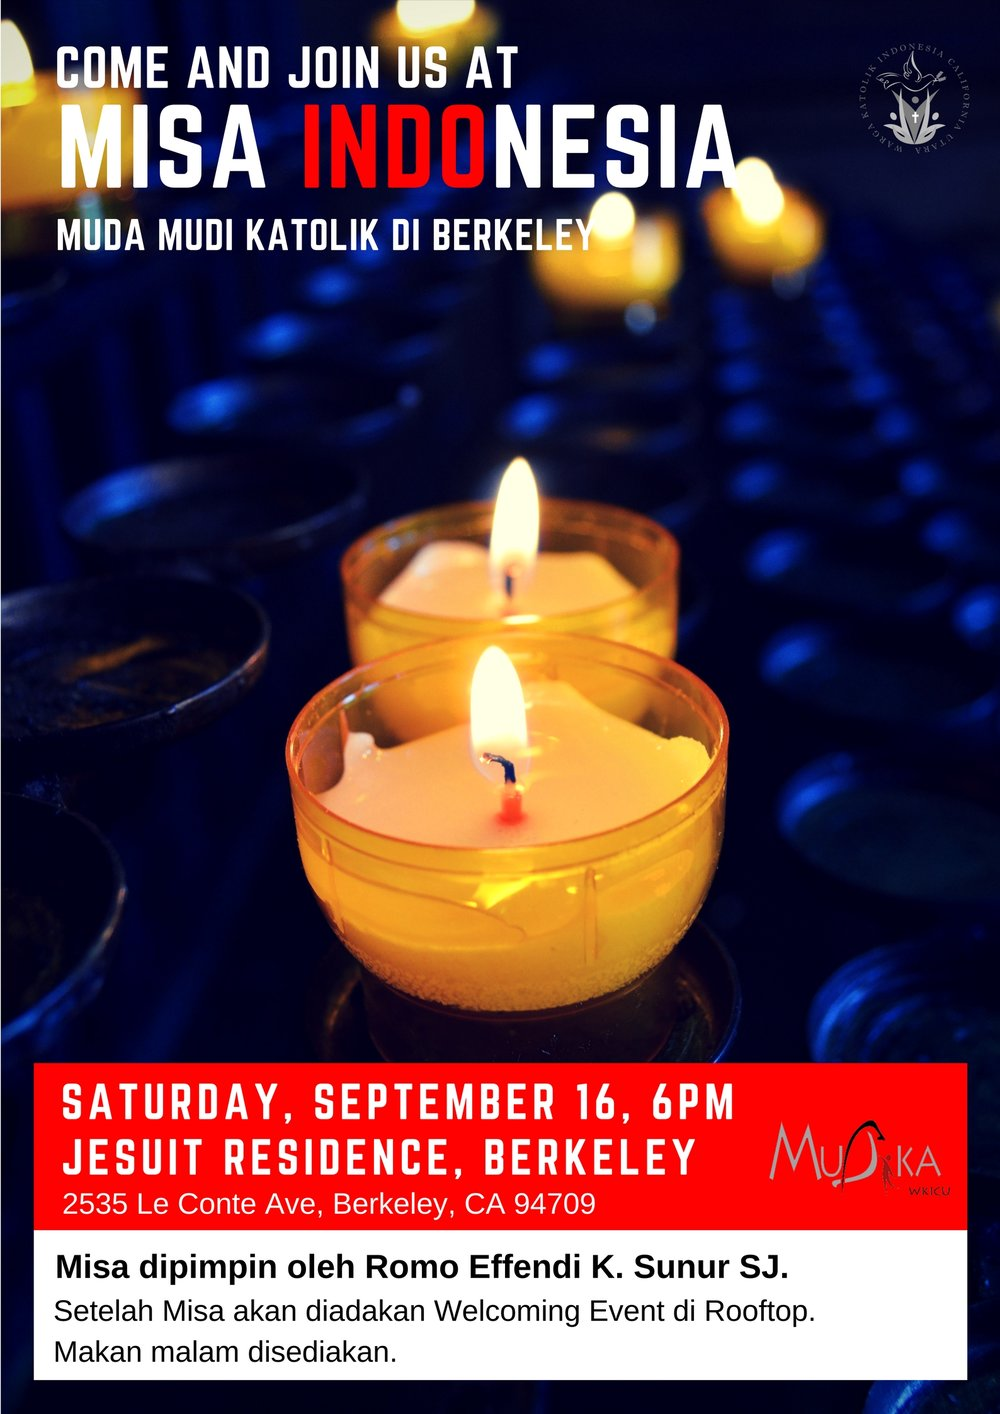 Misa Mudika_Berkeley_September.jpg